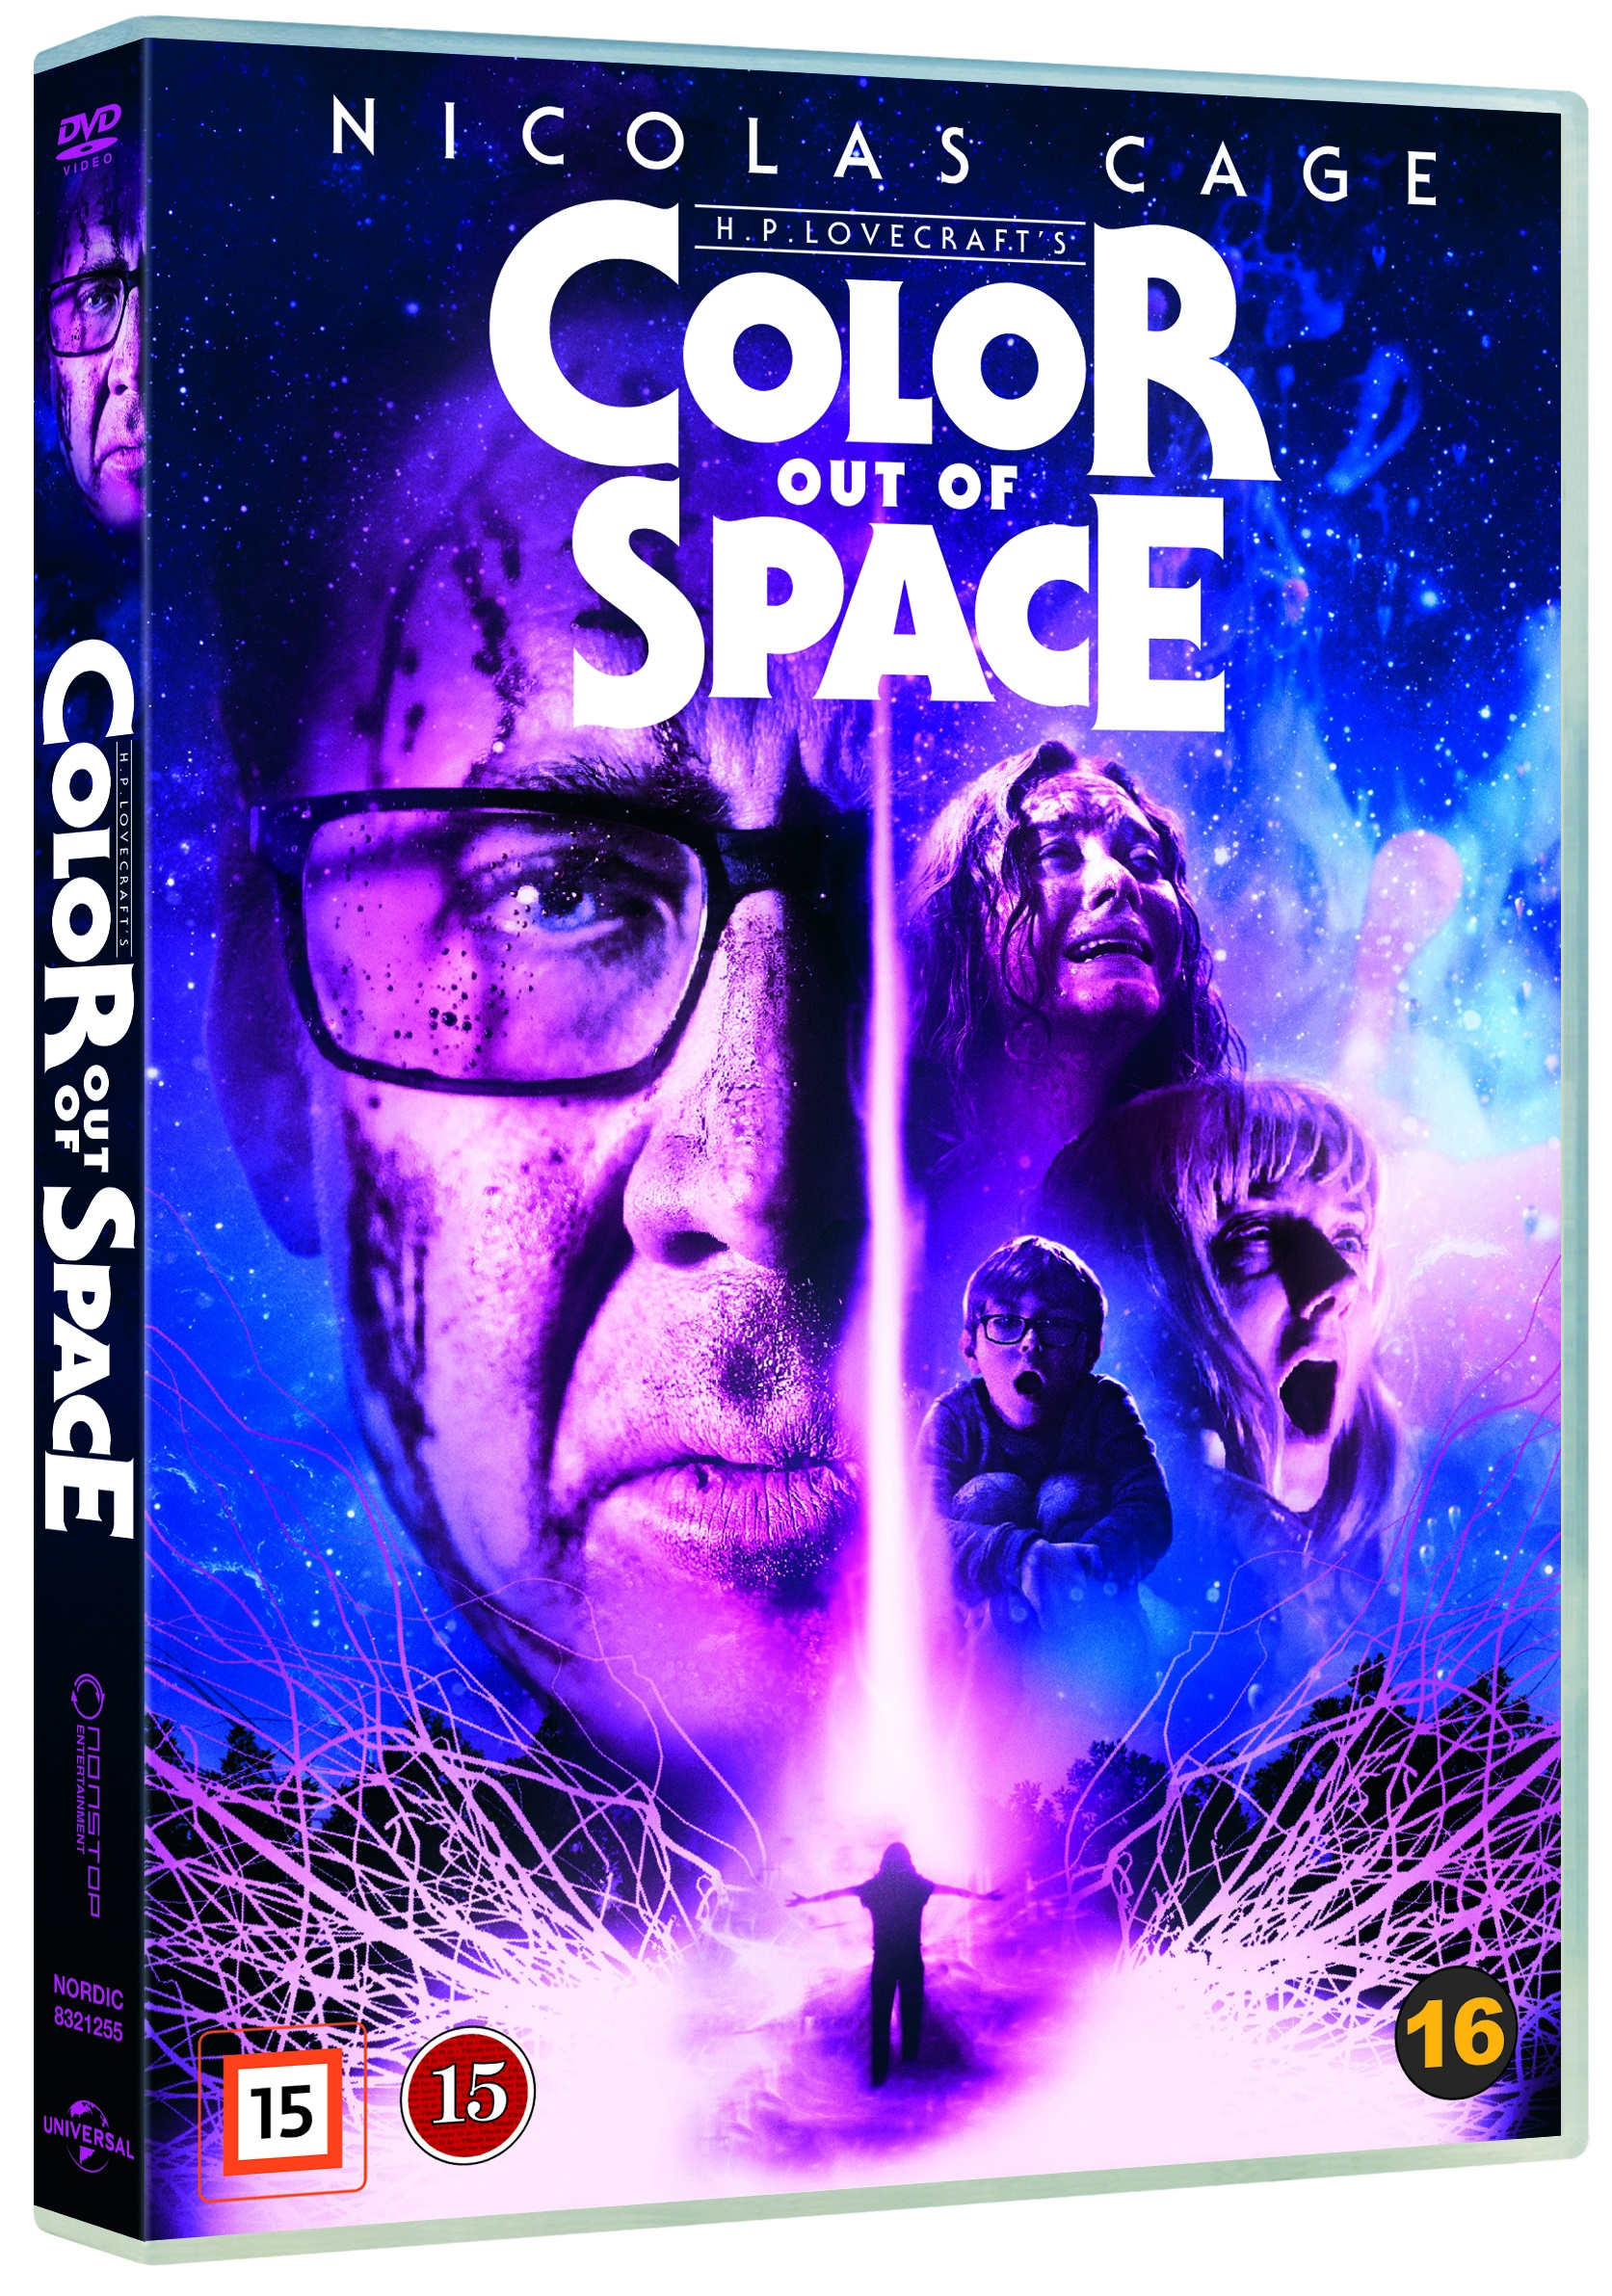 Color out of Space -  - Film -  - 5053083212551 - 15/6-2020